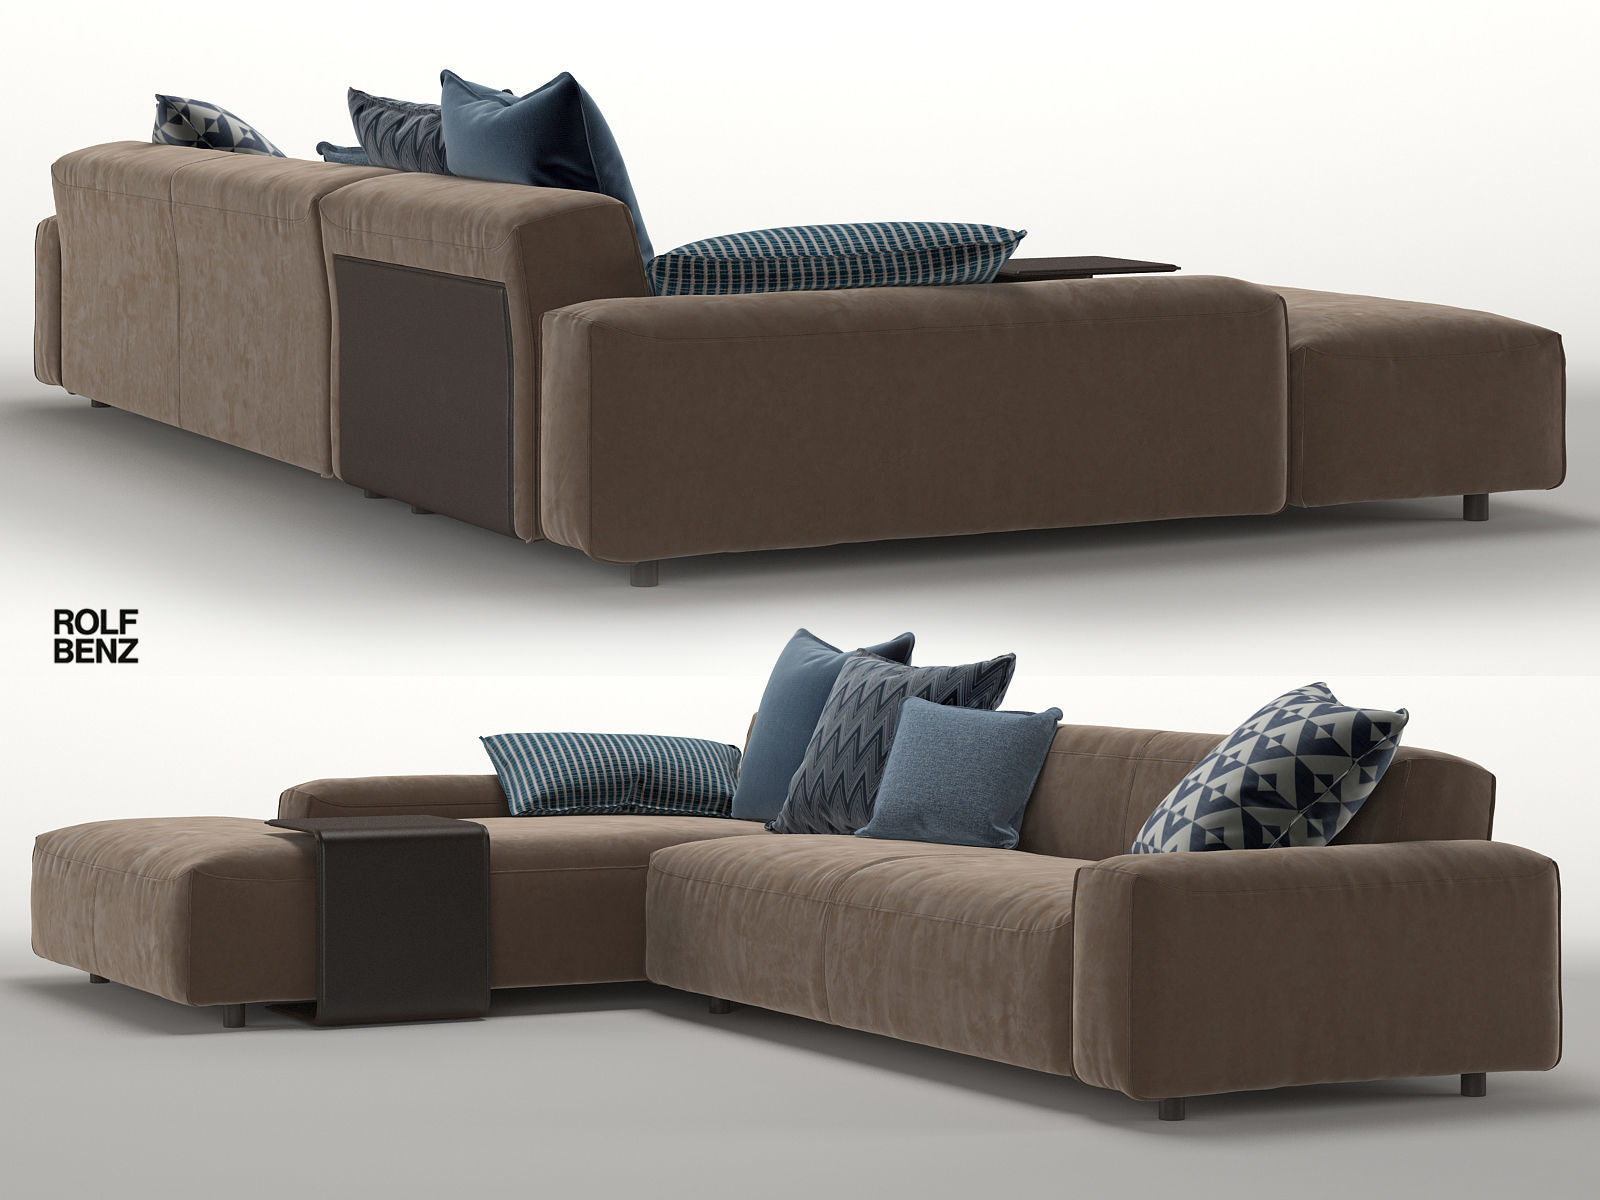 Benz Couch Sofa Rolf Benz Mio 3d Model